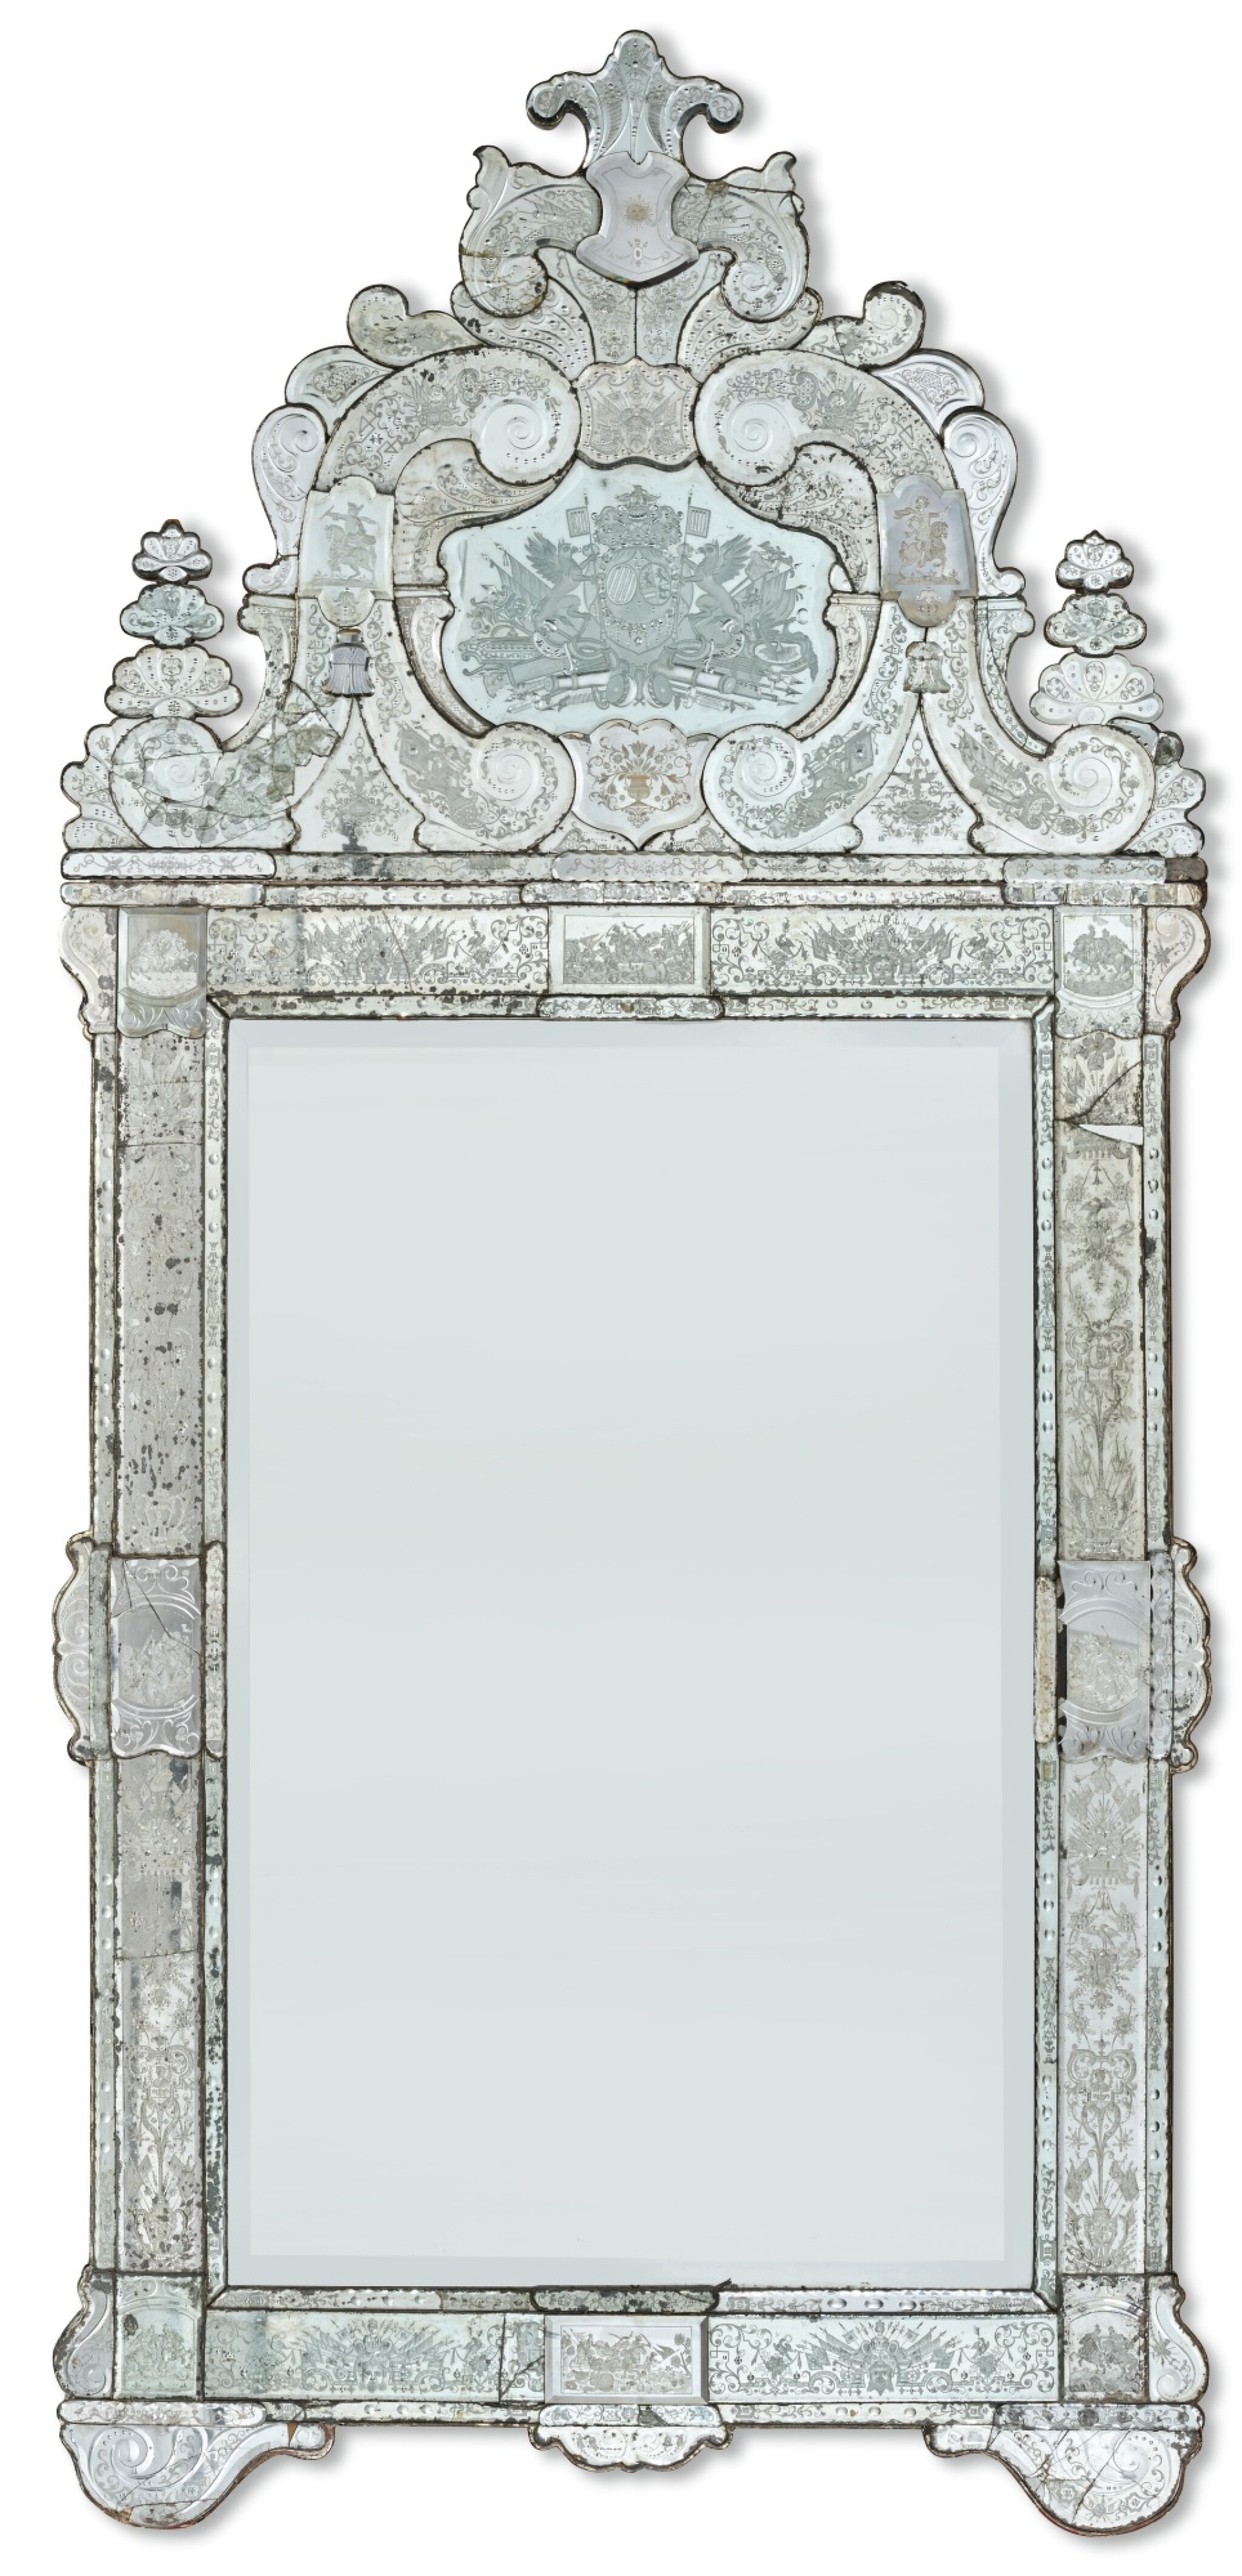 View full screen - View 1 of Lot 145. A GERMAN ETCHED GLASS PIER MIRROR, ATTRIBUTED TO SPIEGELMANUFAKTUR LOHR AM MAIN, CIRCA 1721.